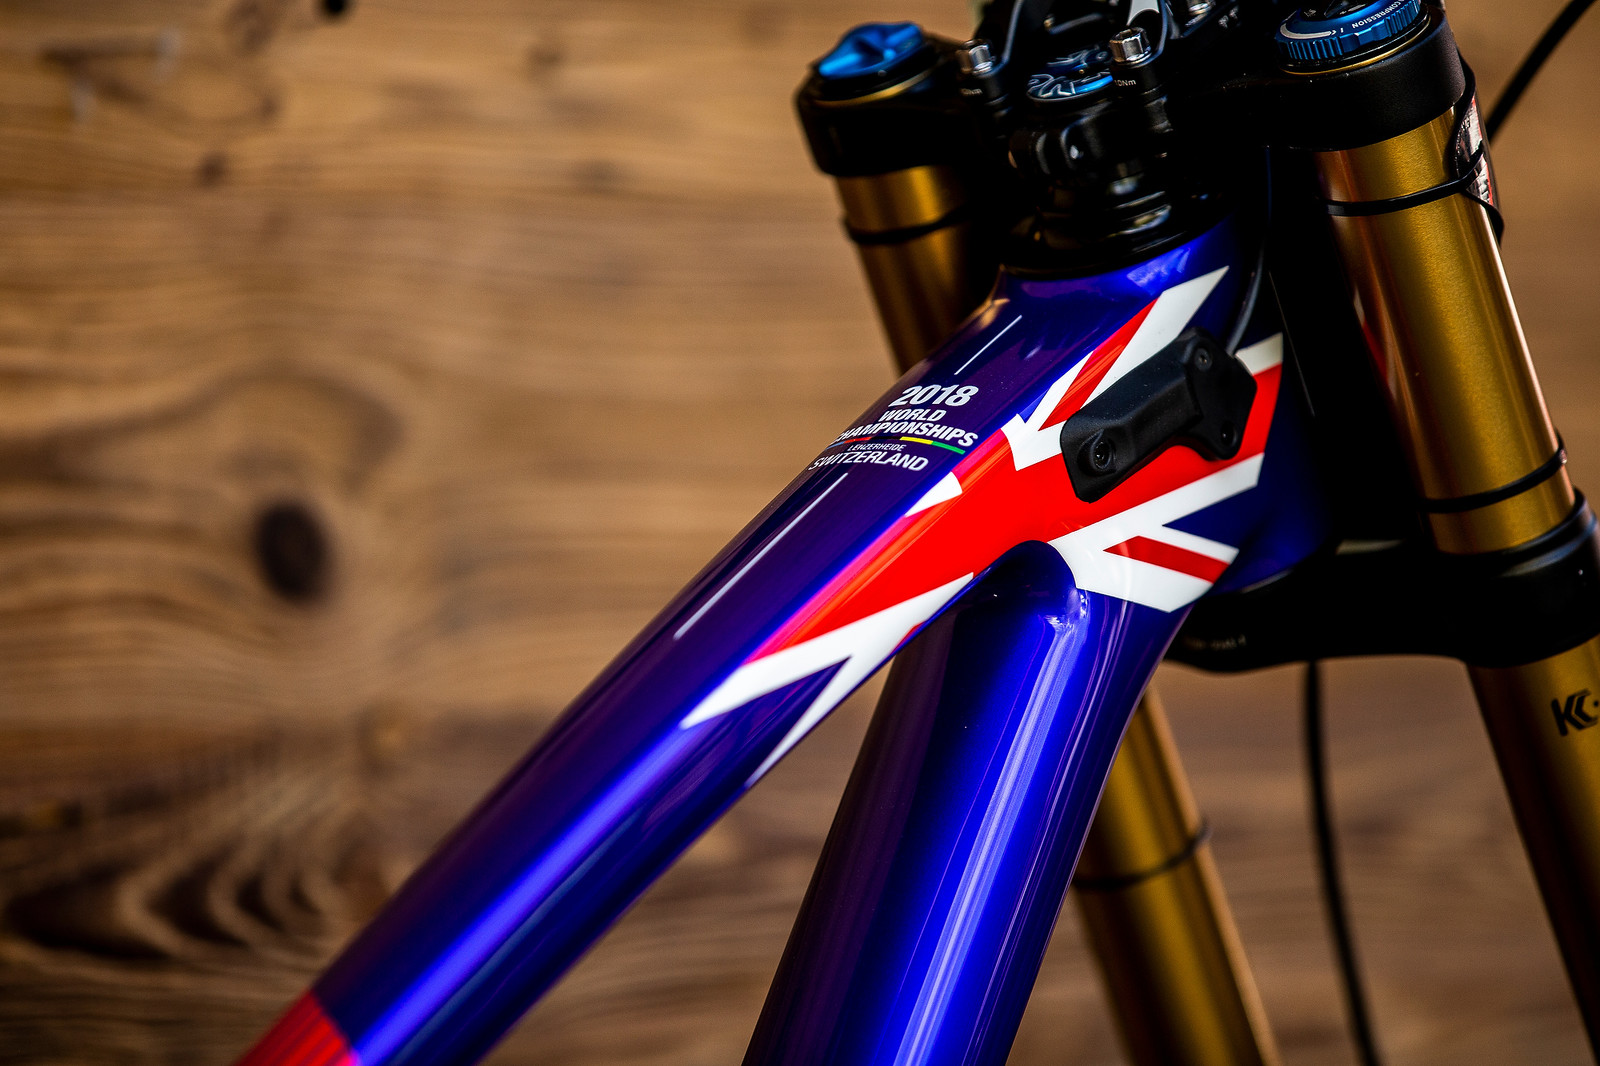 Union Jack - WORLD CHAMPS BIKE - Matt Walker's Saracen Myst - Mountain Biking Pictures - Vital MTB